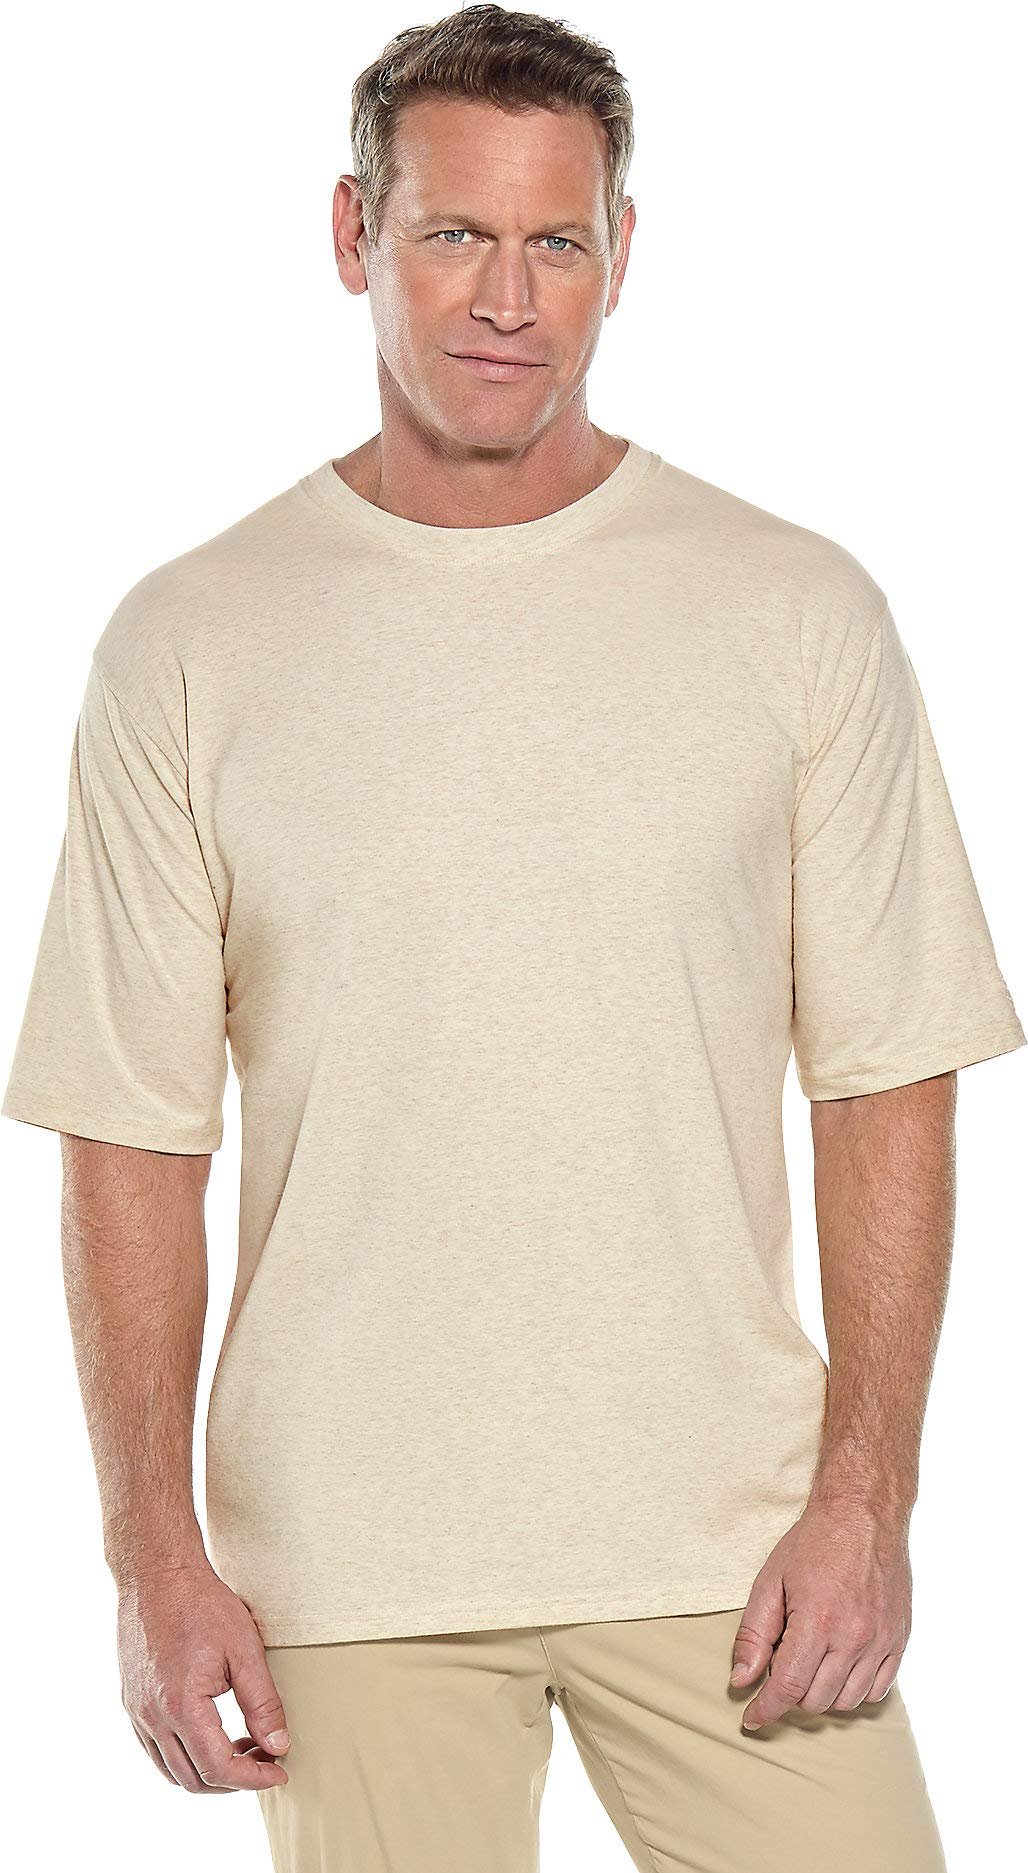 Coolibar UPF 50+ Men's Short Sleeve Everyday T-Shirt - Sun Protective (X-Large- Light Oatmeal Heather)